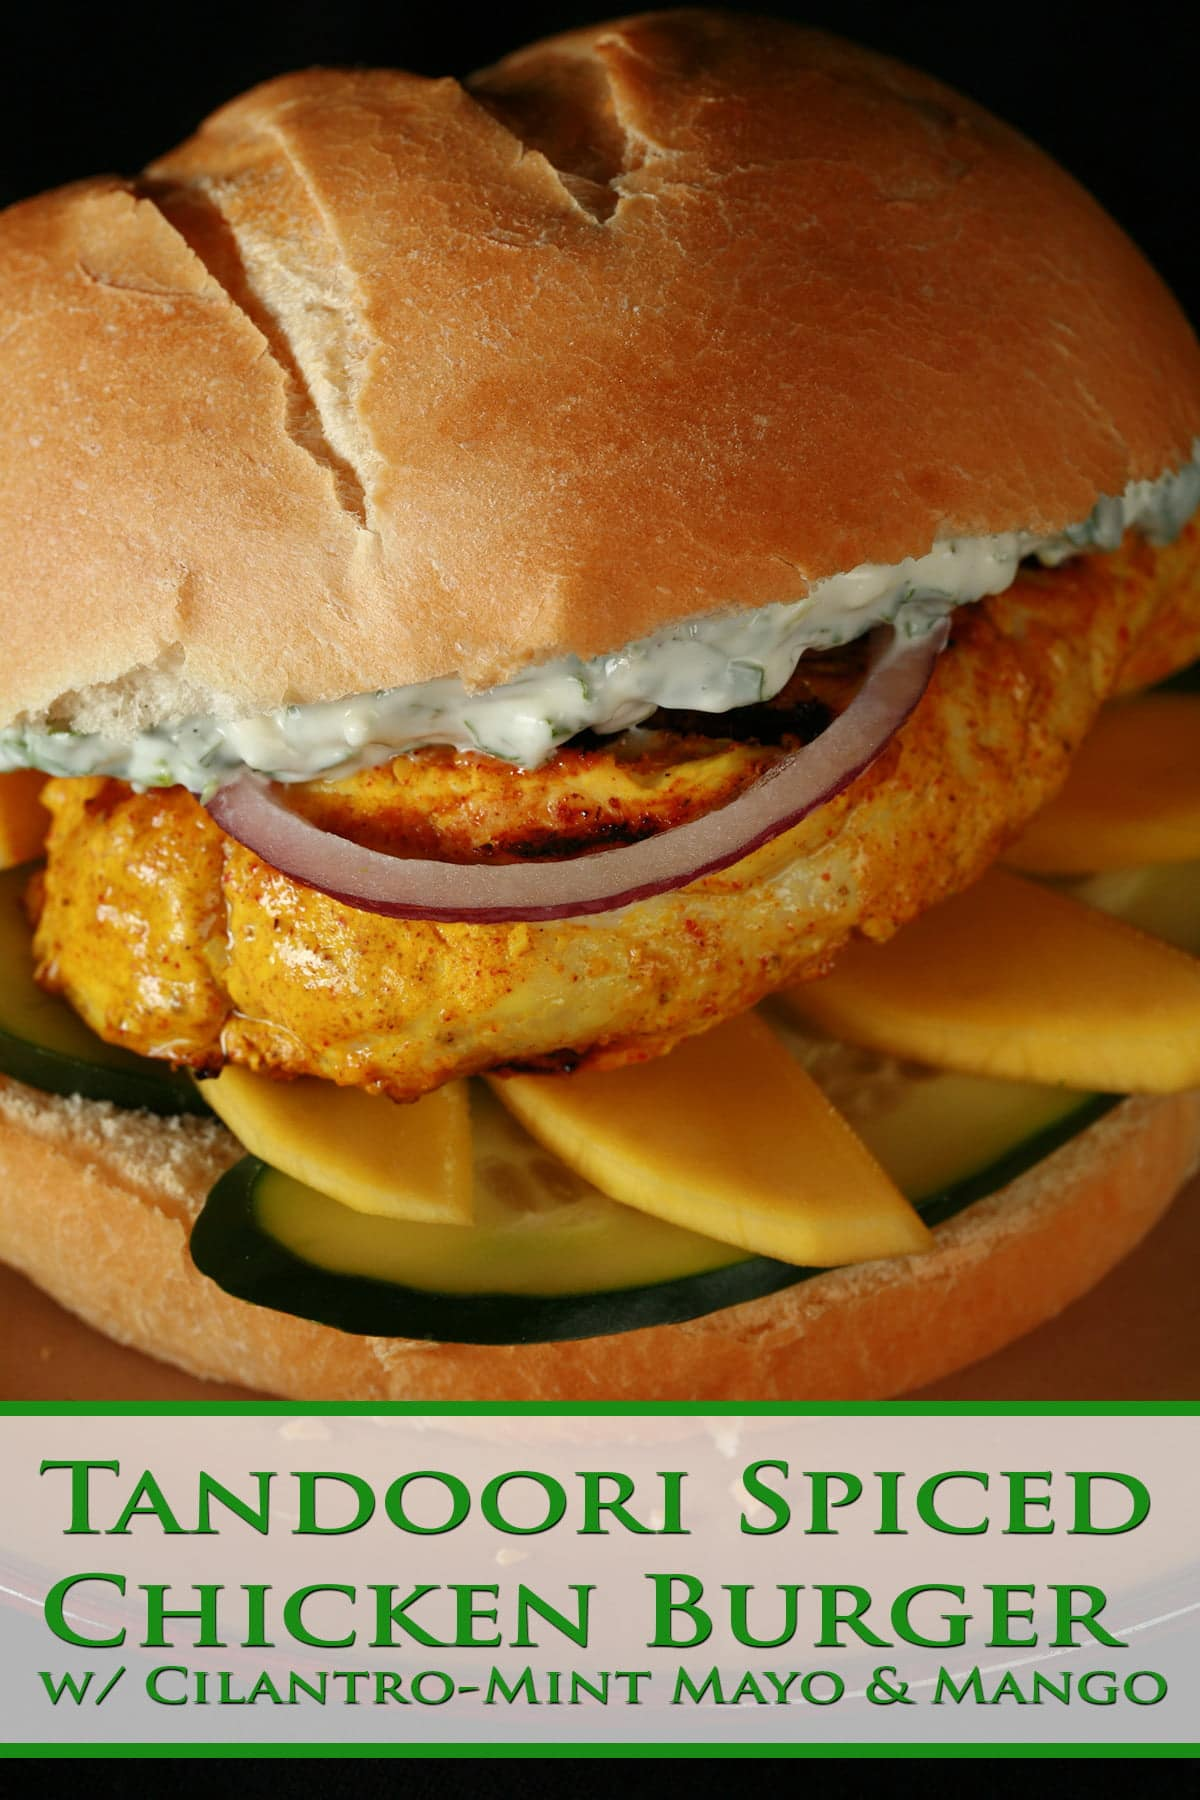 A Tandoori Spiced Chicken Burger: Tandoori Marinated chicken breast with cucumbers, mango, red onions, and a cilantro mint mayo.